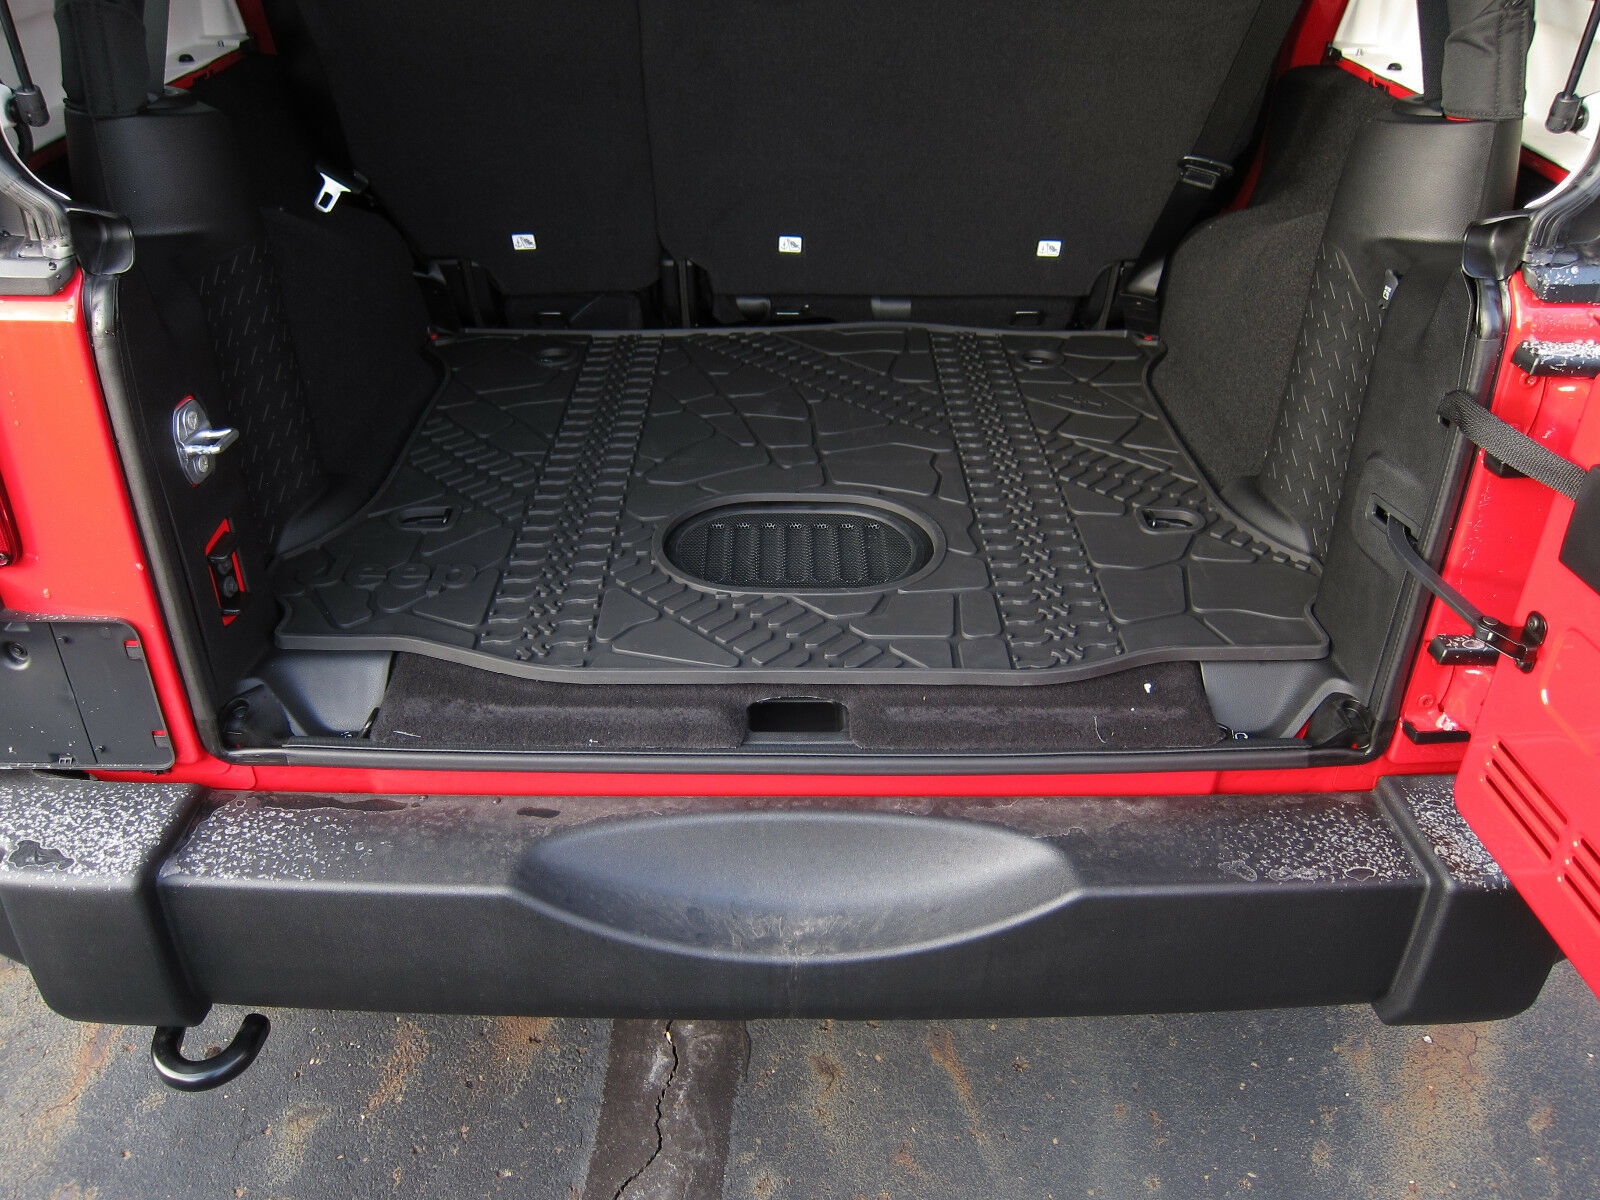 2016 Dodge Avenger >> 2015-18 Jeep Wrangler JK Unlimited Rear Cargo Mat Tray with Subwoofer Cutout OEM | eBay